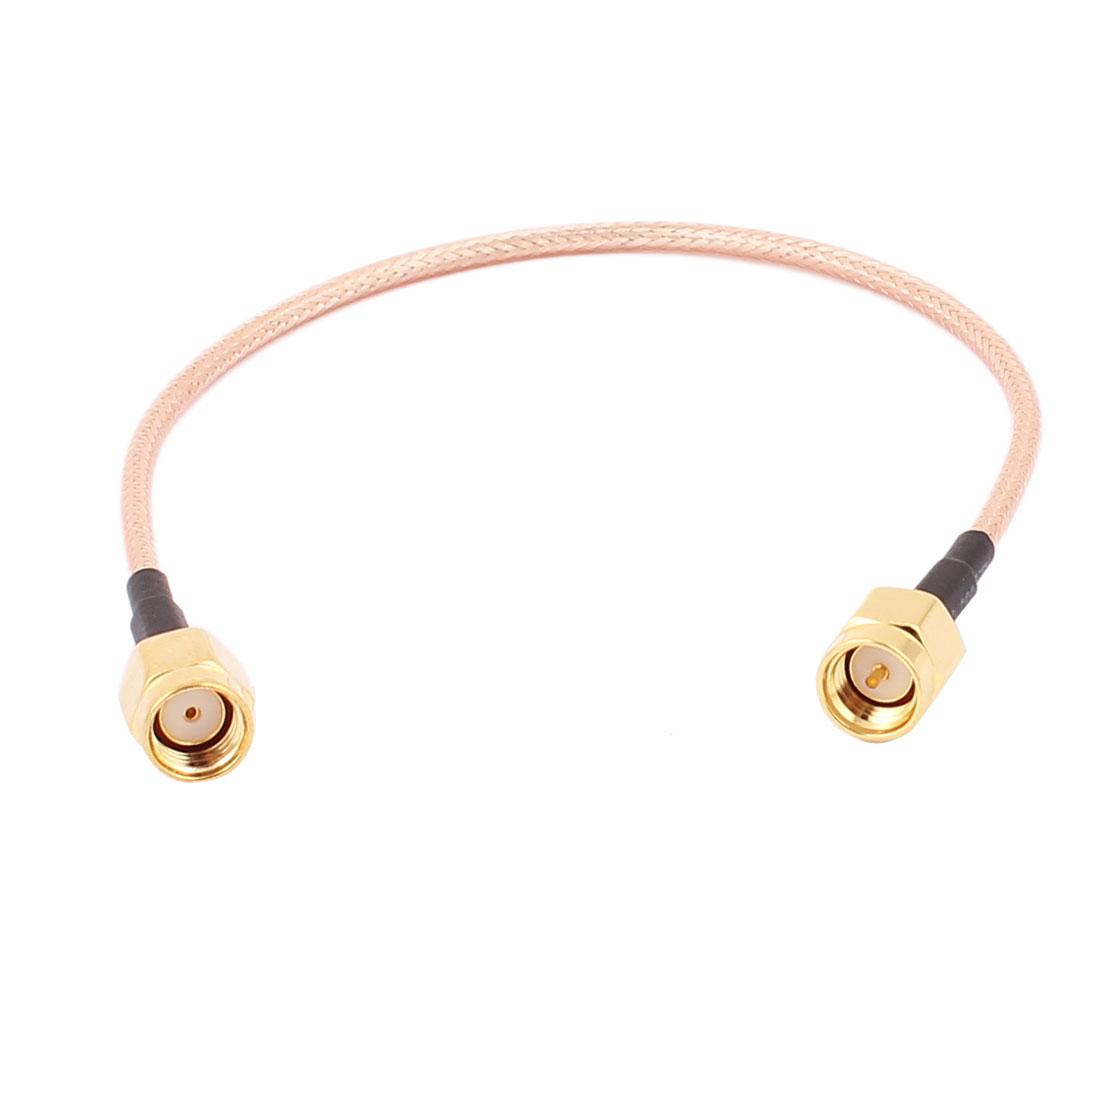 RP-SMA-J Female to SMA-J Male RG316 Coaxial Cable Pigtail 20cm